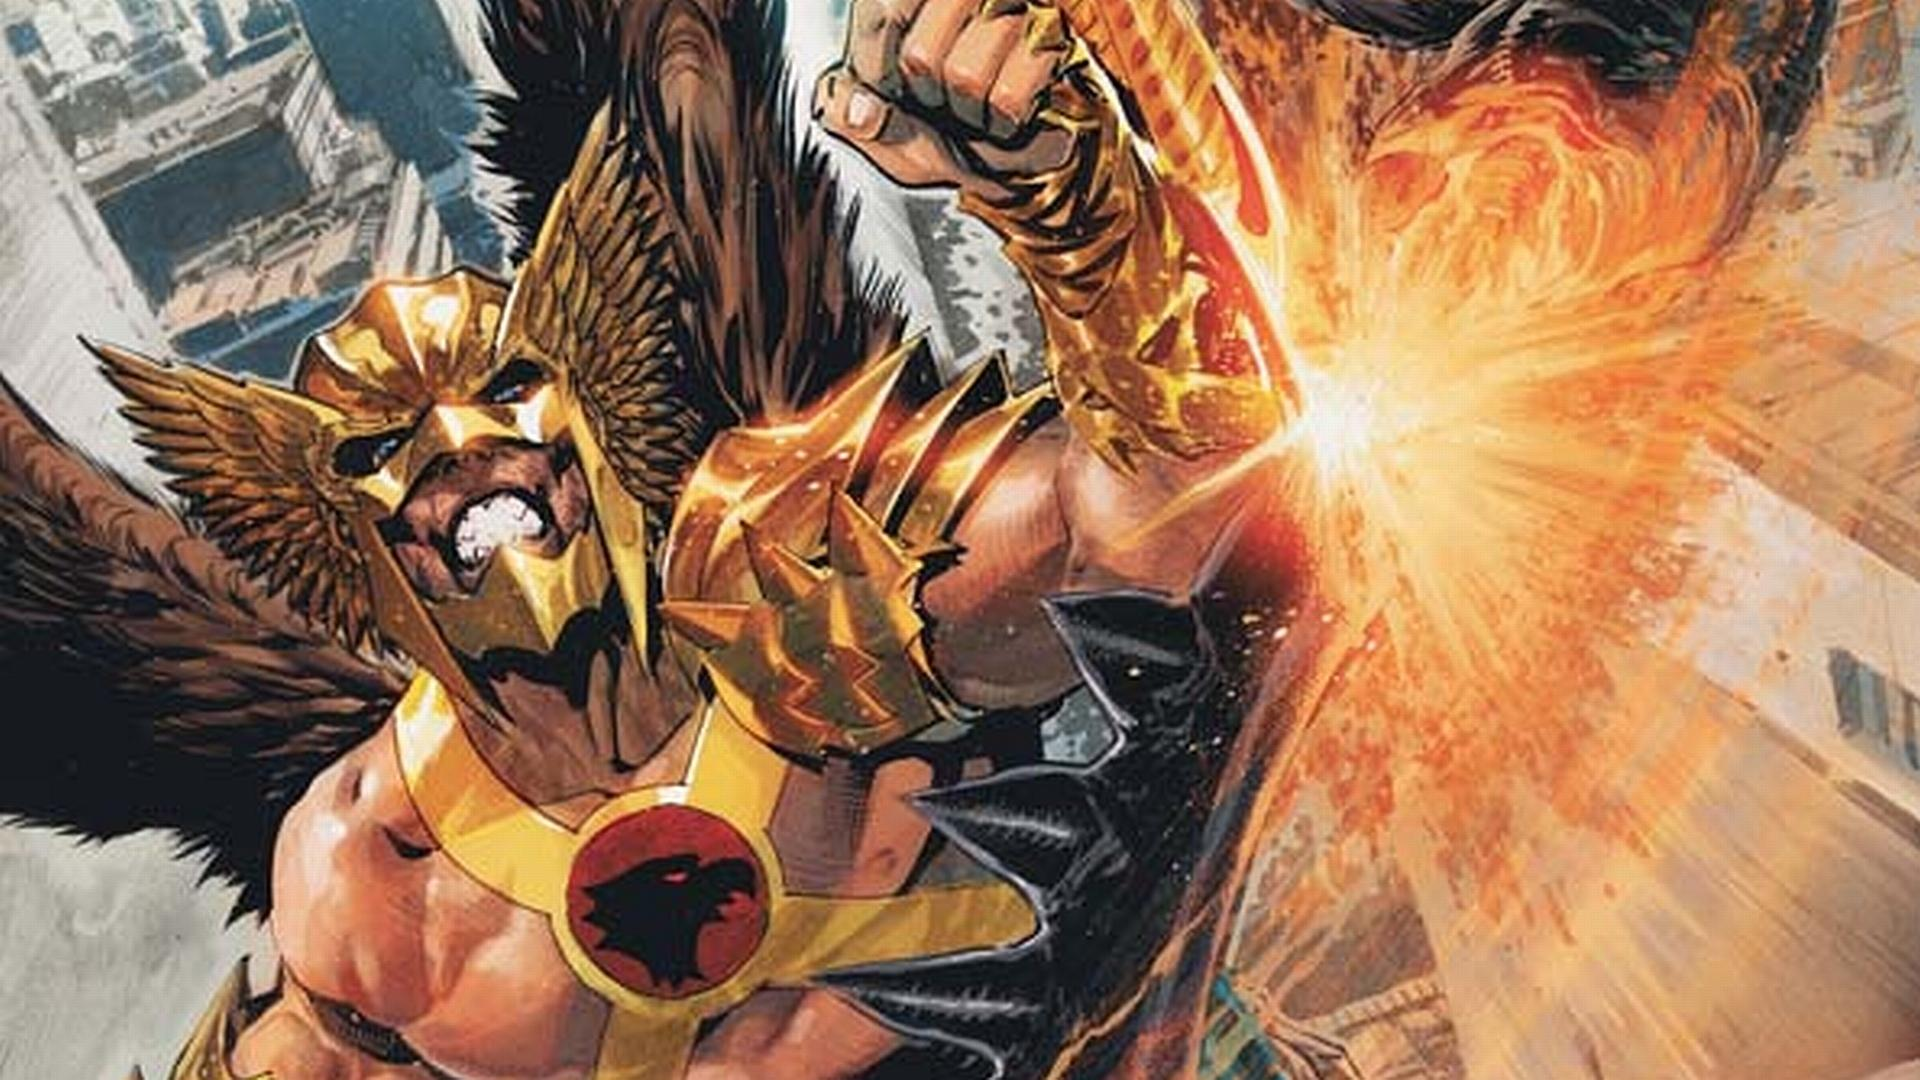 Hawkman Comics wallpapers HD quality